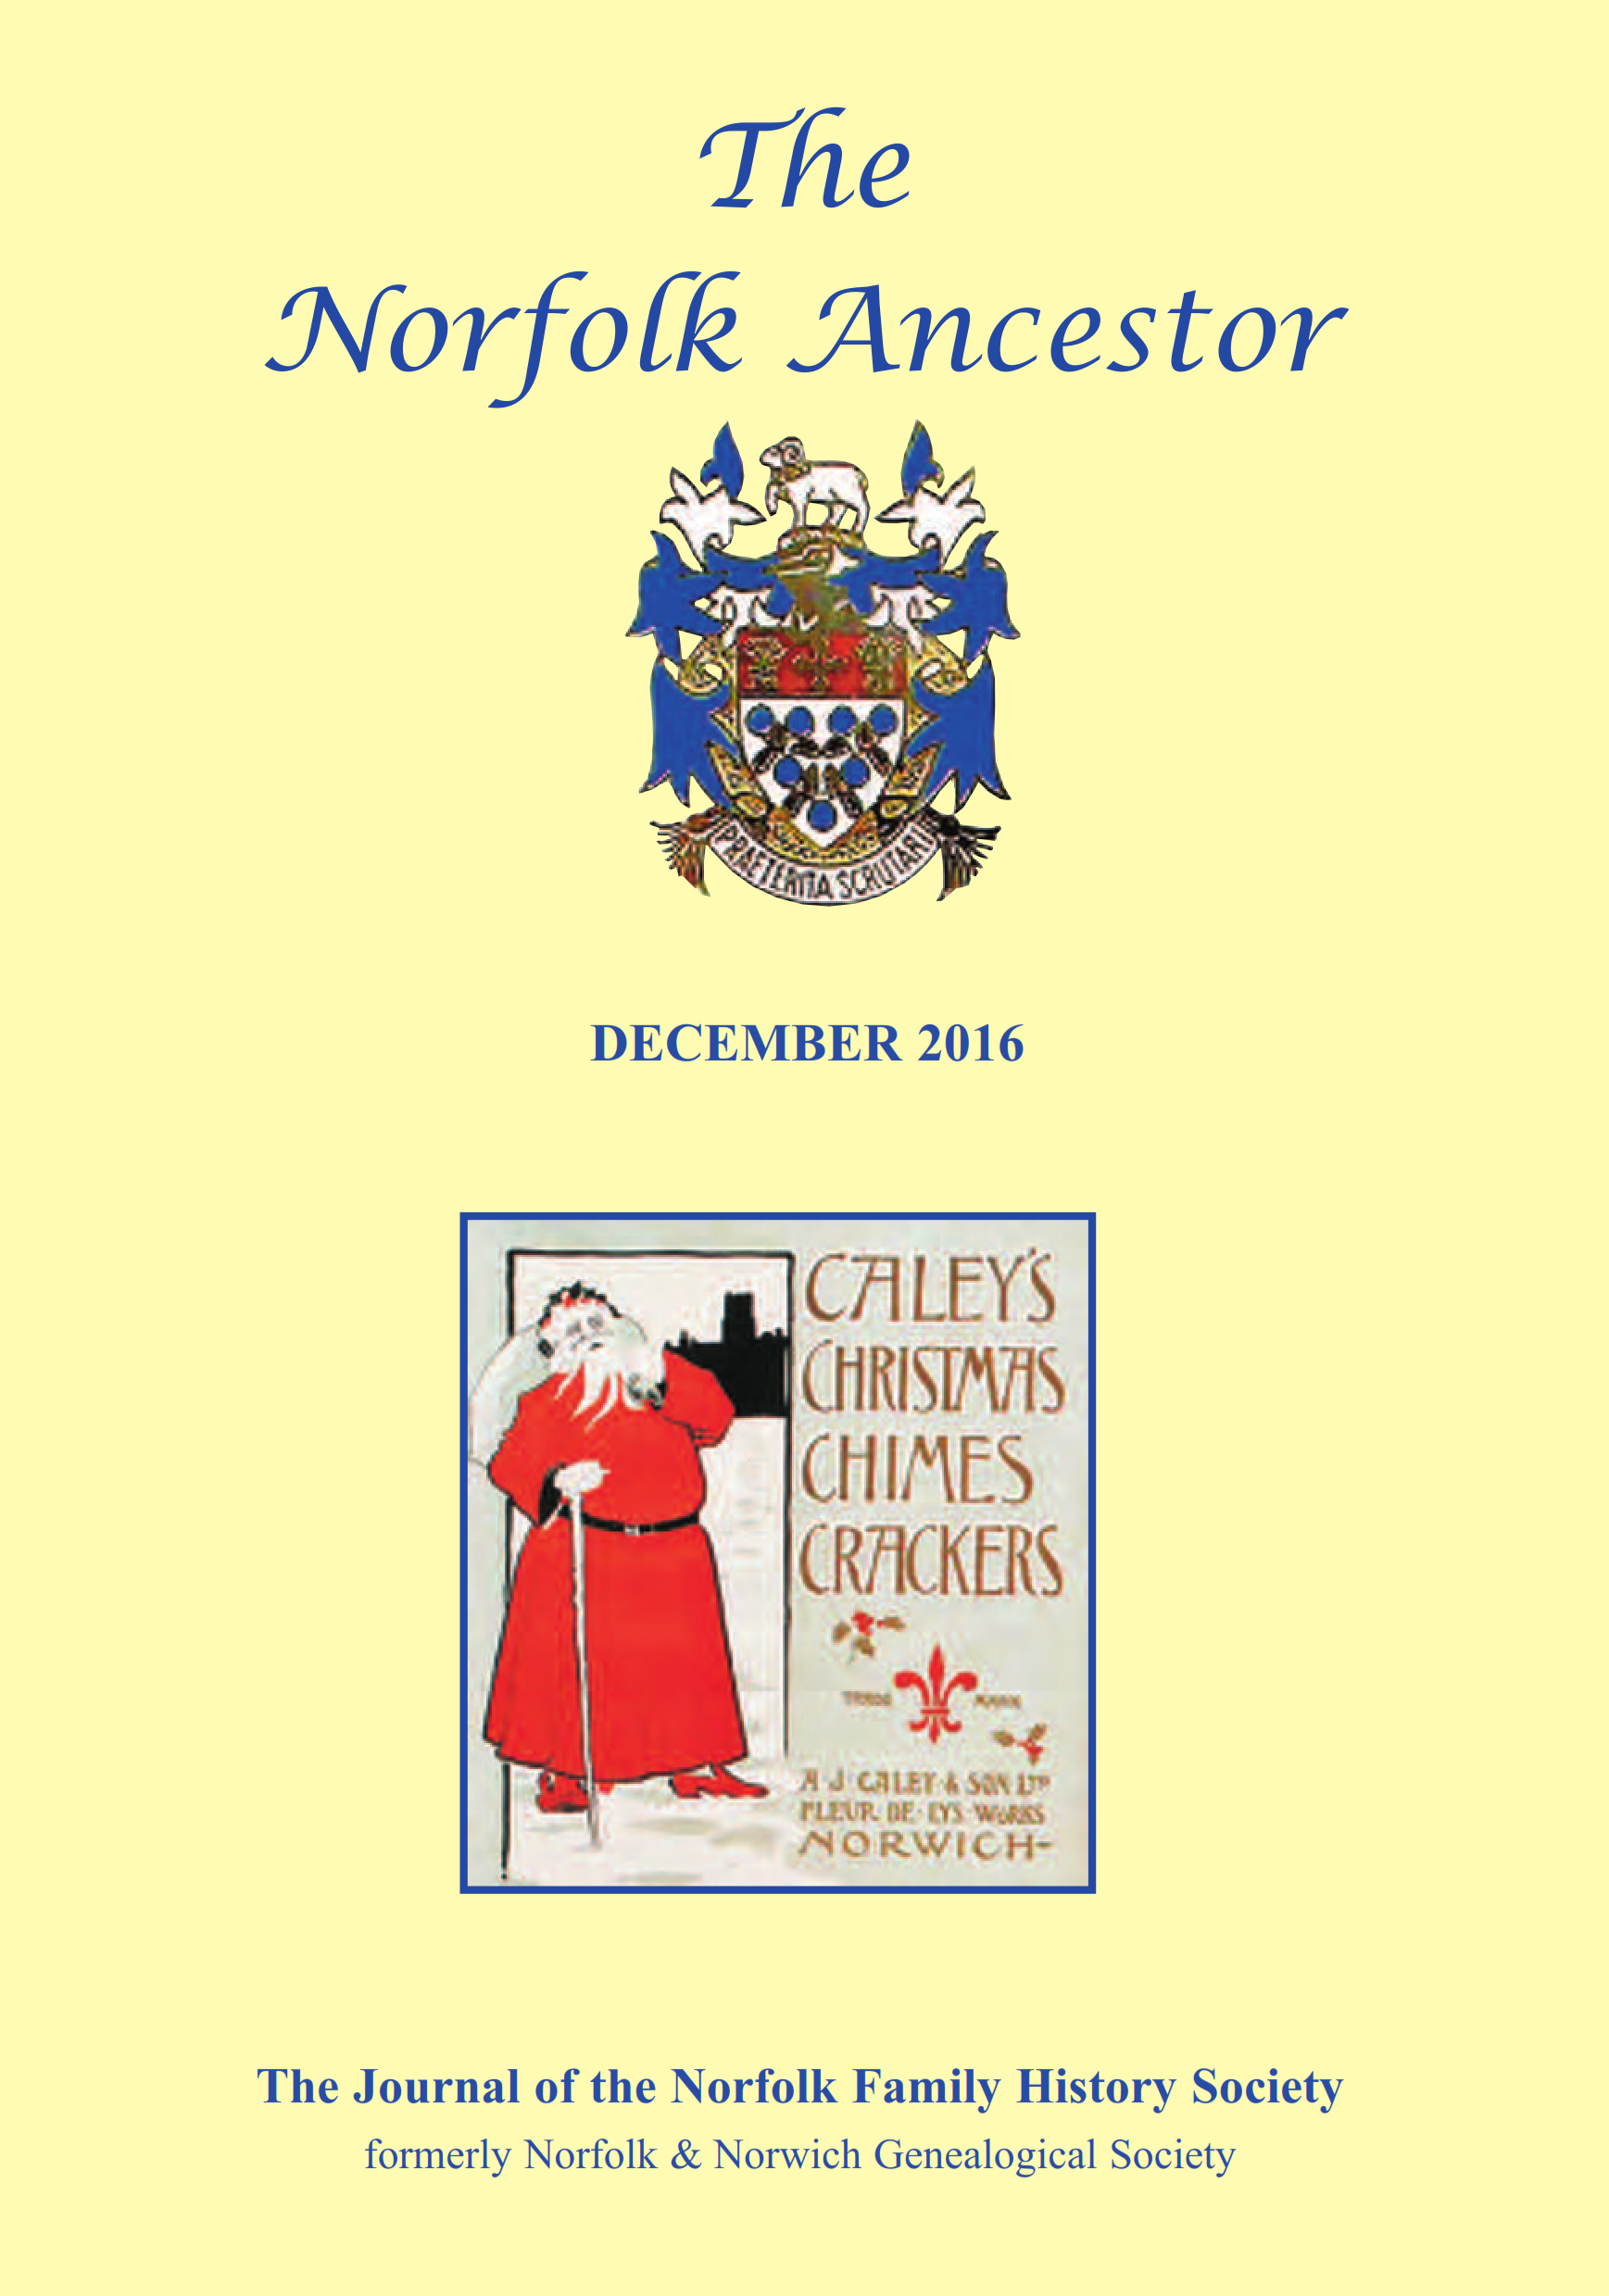 The Norfolk Ancestor Dec 2016